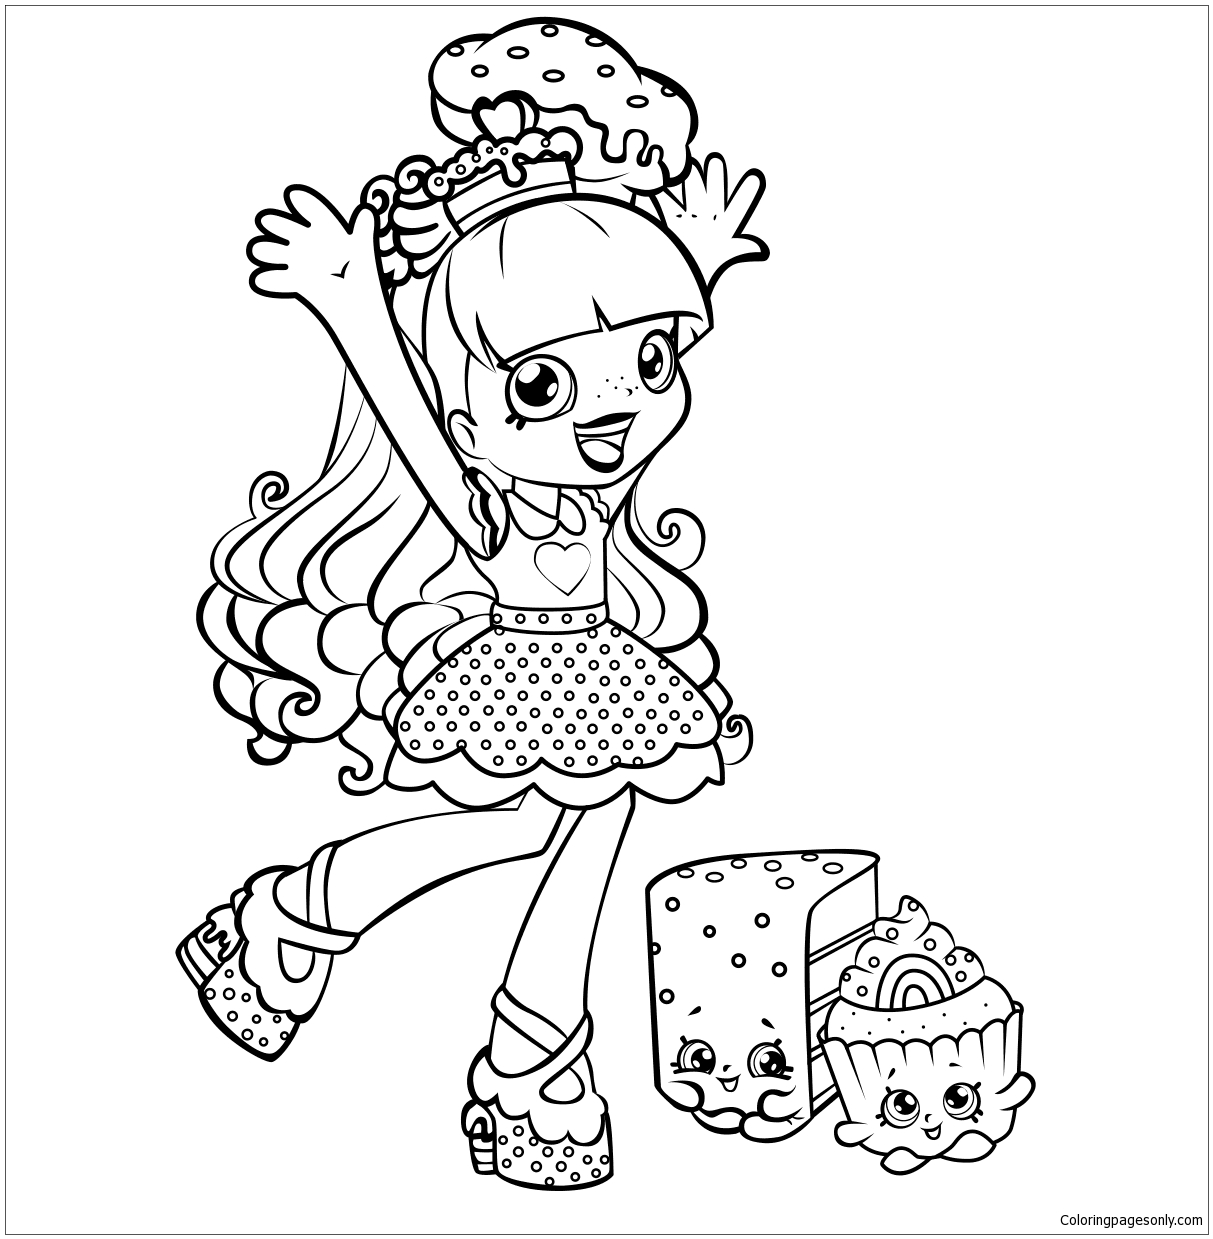 Shoppies Rainbow Kate Shopkins Coloring Page - Free ...